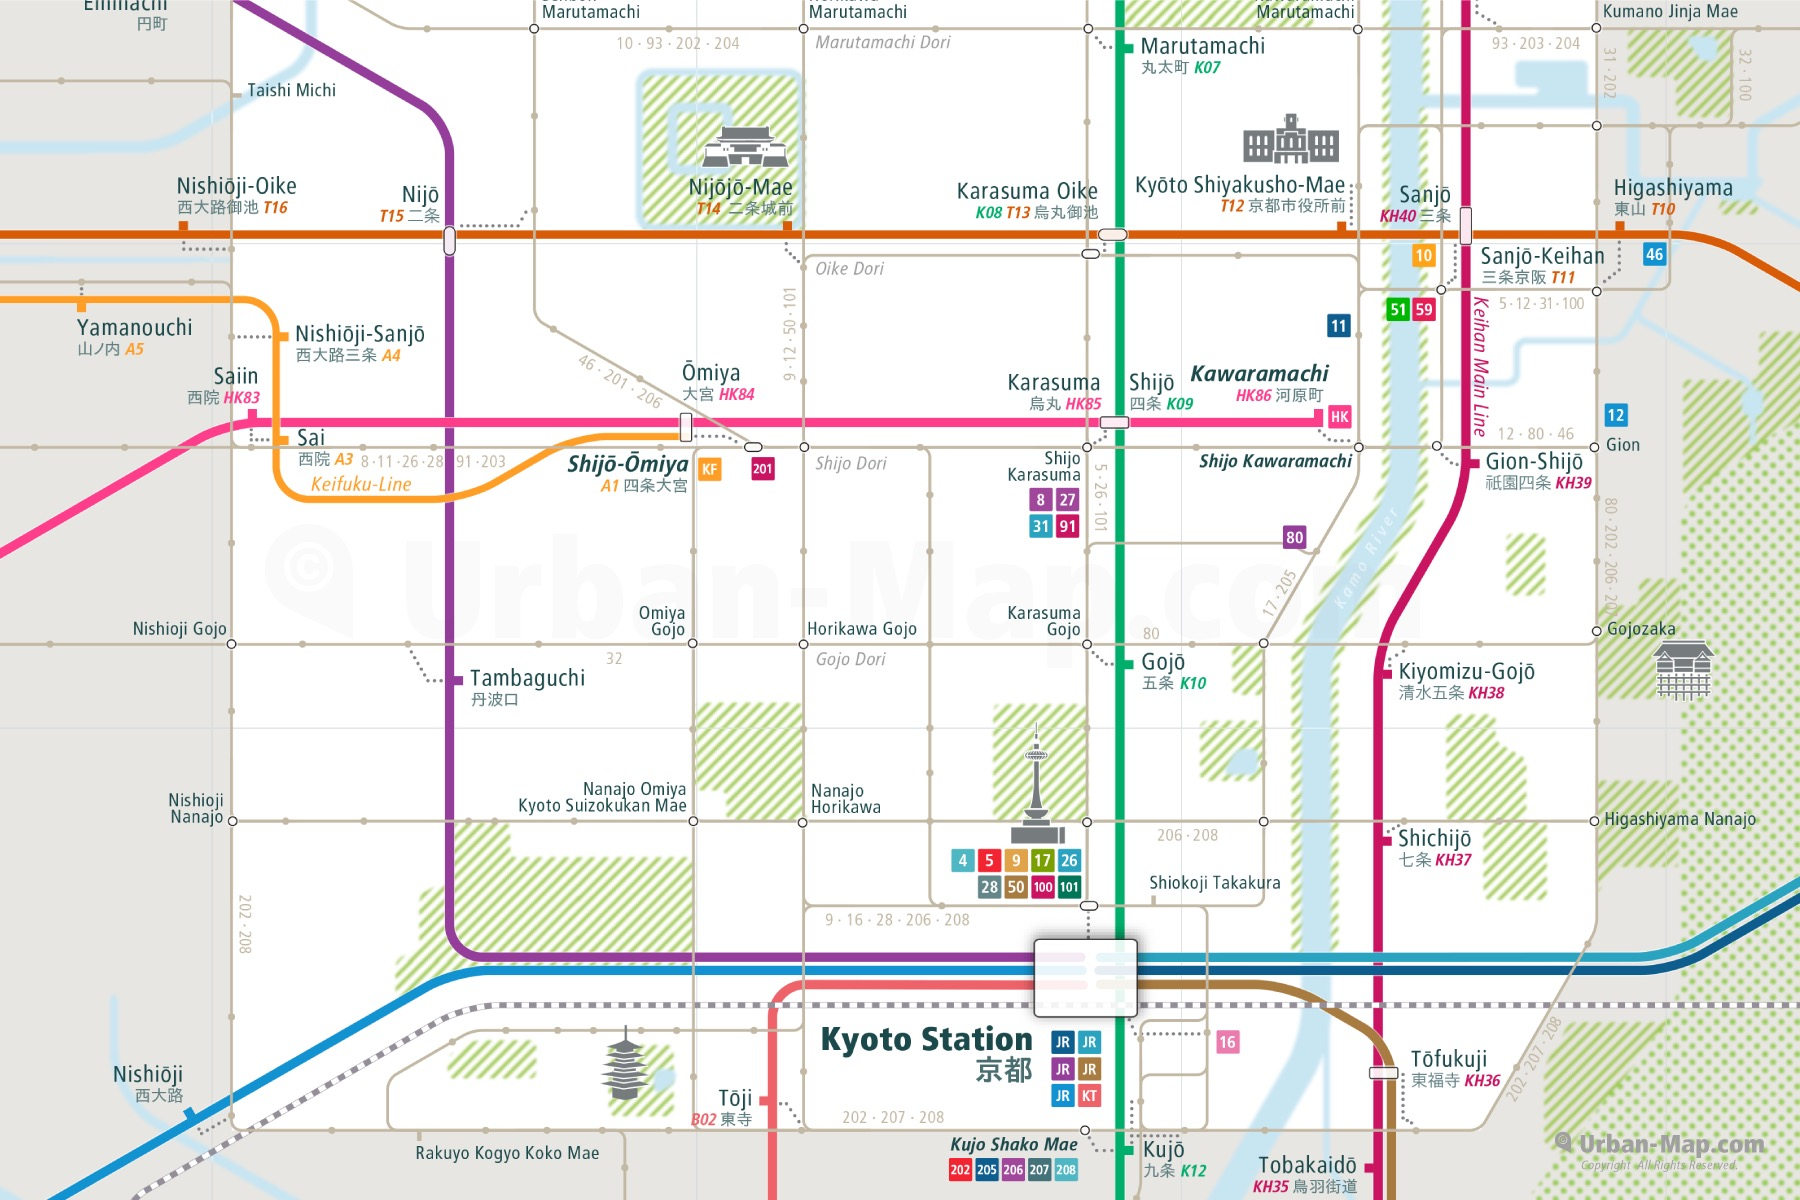 Kyoto Rail Map - A Smart City Guide Map, Even Offline! on portland bus route map, manila bus route map, busan bus route map, athens bus route map, hamamatsu bus route map, lima bus route map, singapore bus route map, lyon bus route map, berlin bus route map, dubai bus route map, washington bus route map, hanoi bus route map, stockholm bus route map, frankfurt bus route map, rome bus route map, xian bus route map, adelaide bus route map, santiago bus route map, takayama bus route map, wellington bus route map,